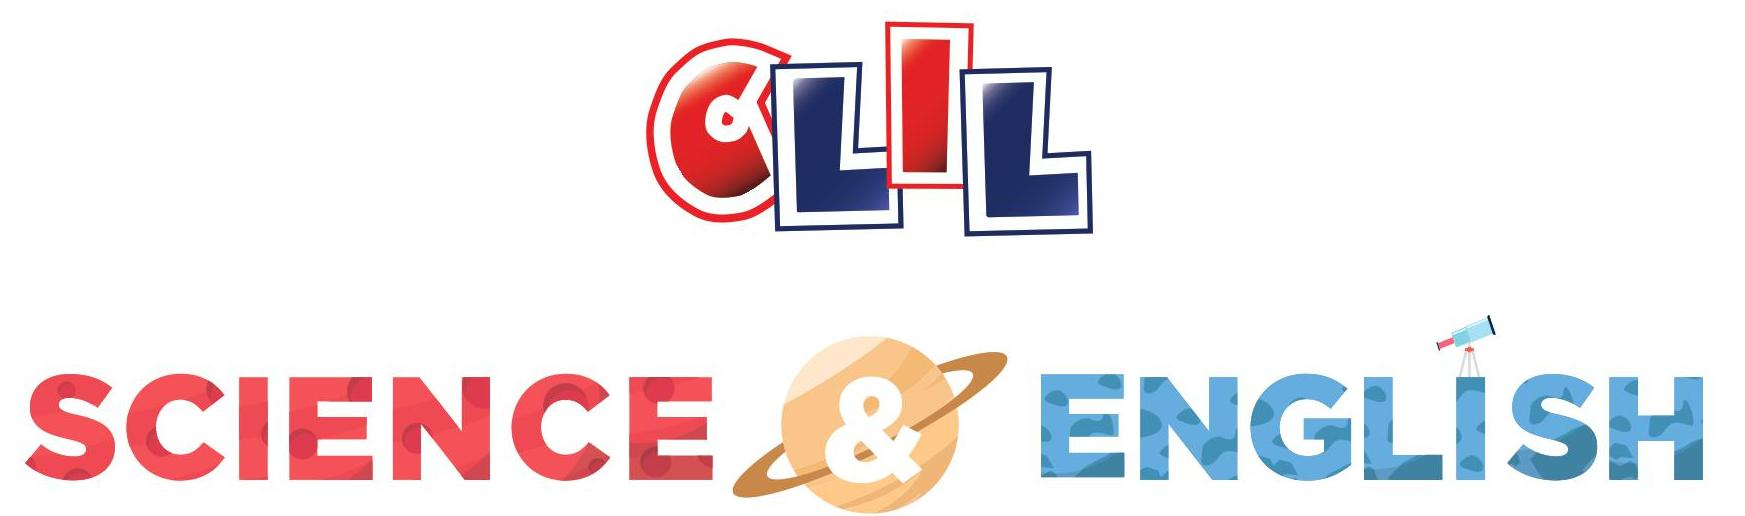 Progetto SCIENCE & ENGLISH with ENGLISH CLIL-BASED WORKSHOPS ...